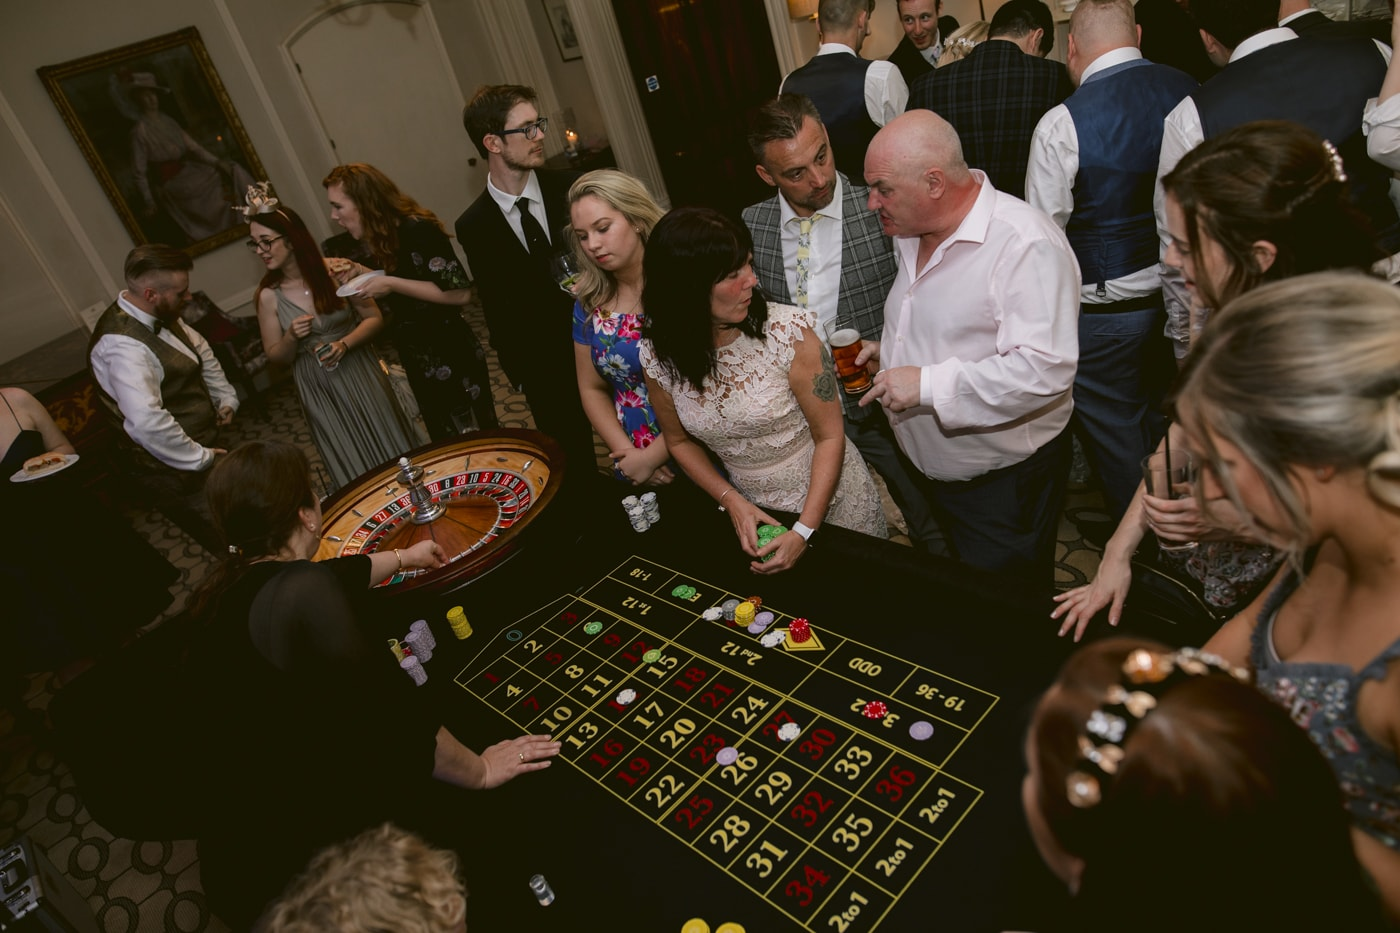 Guests at Dealing Table Playing Casino at Storrs Hall Wedding